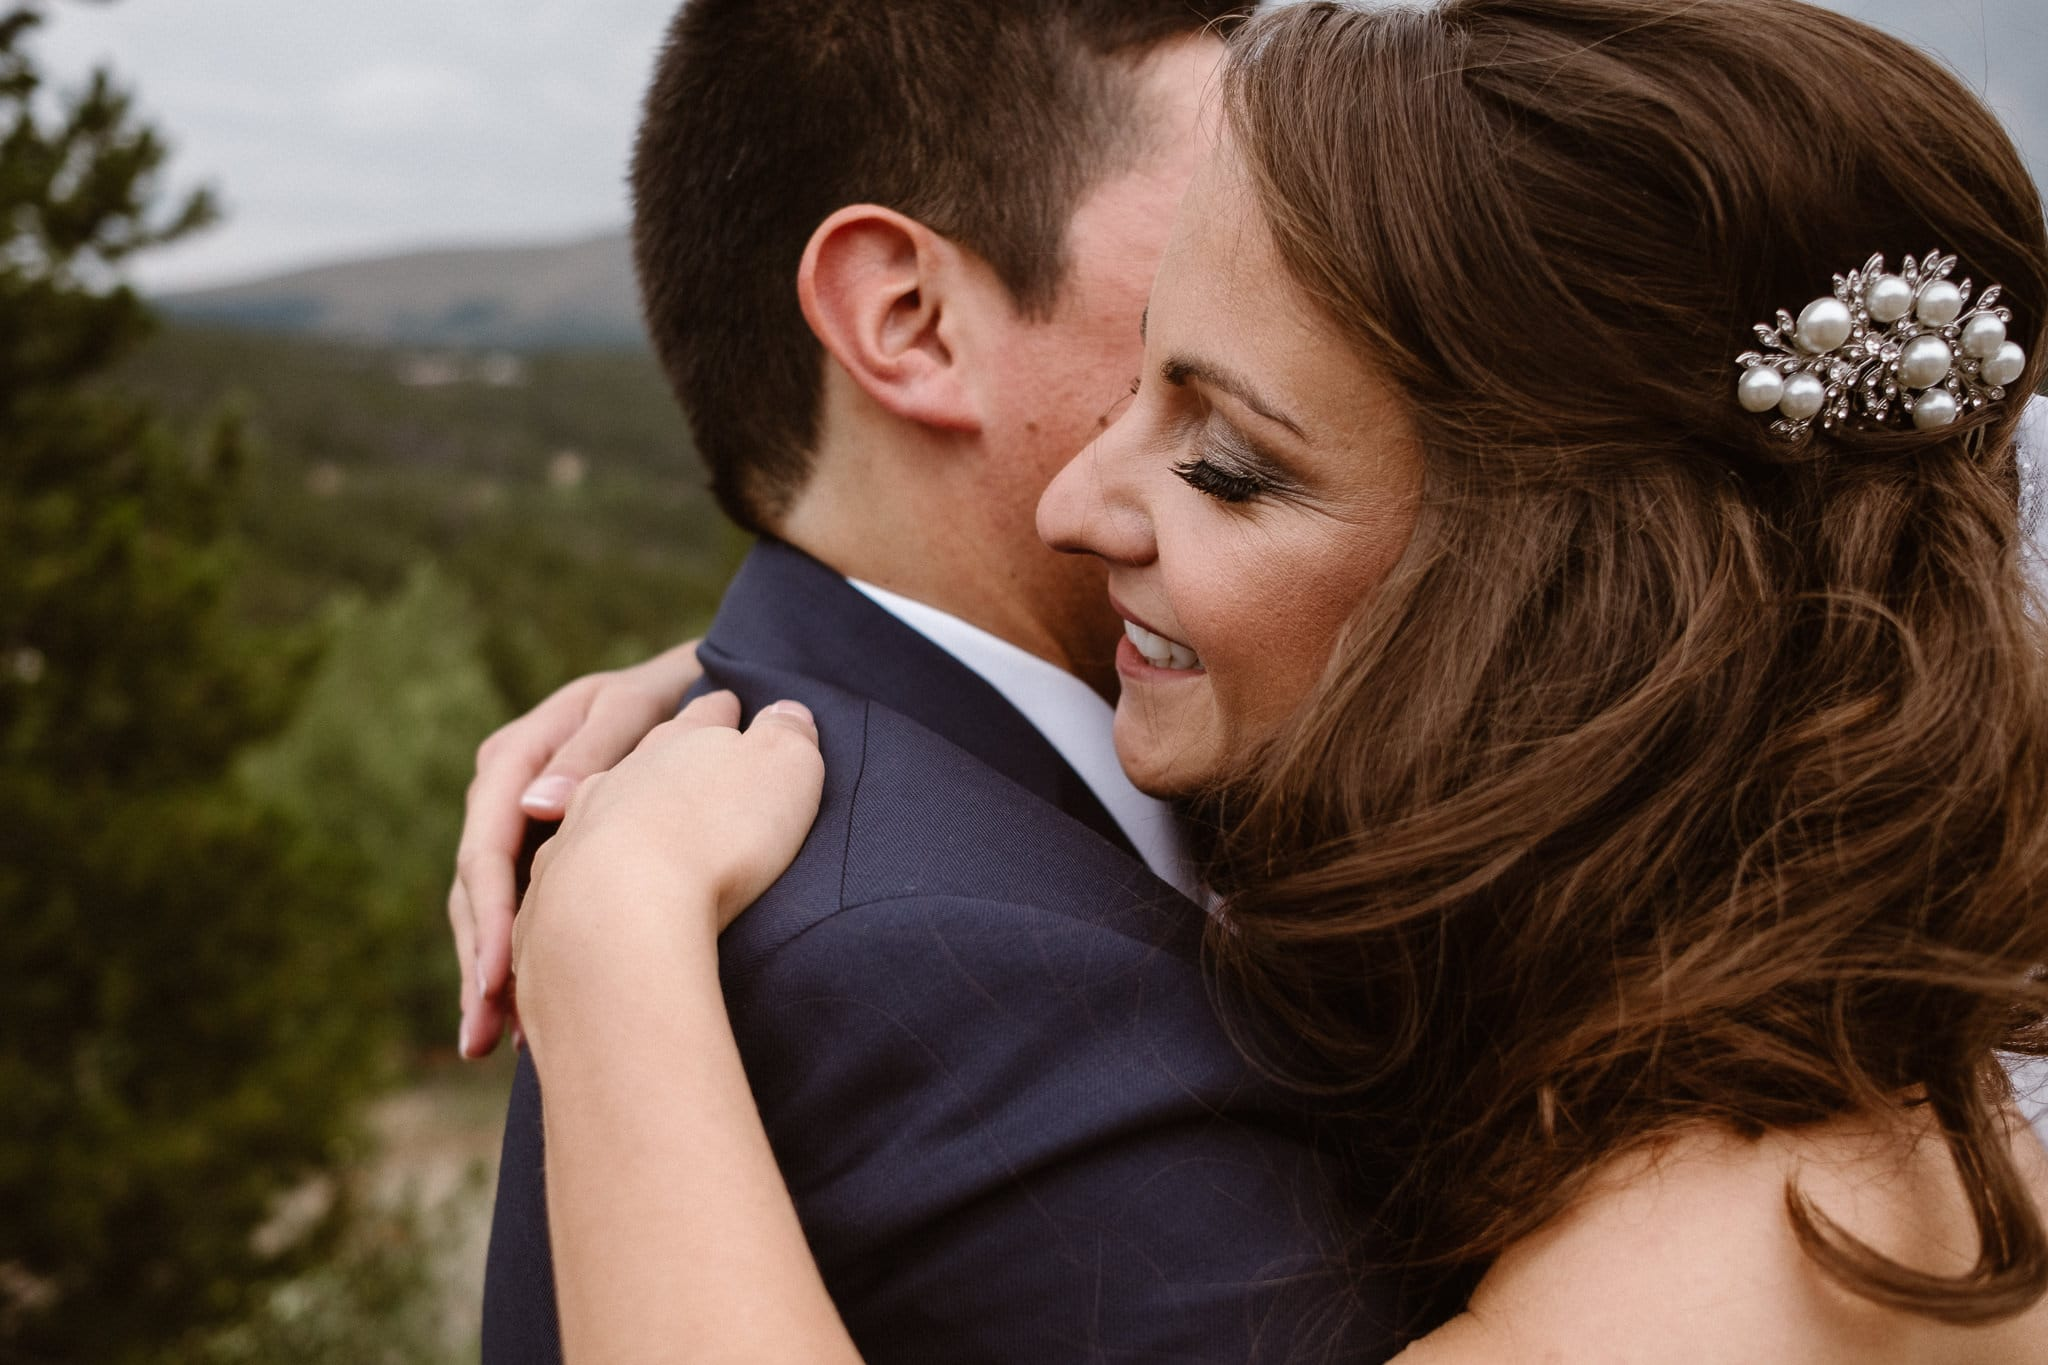 Close up portrait of bride and groom hugging.